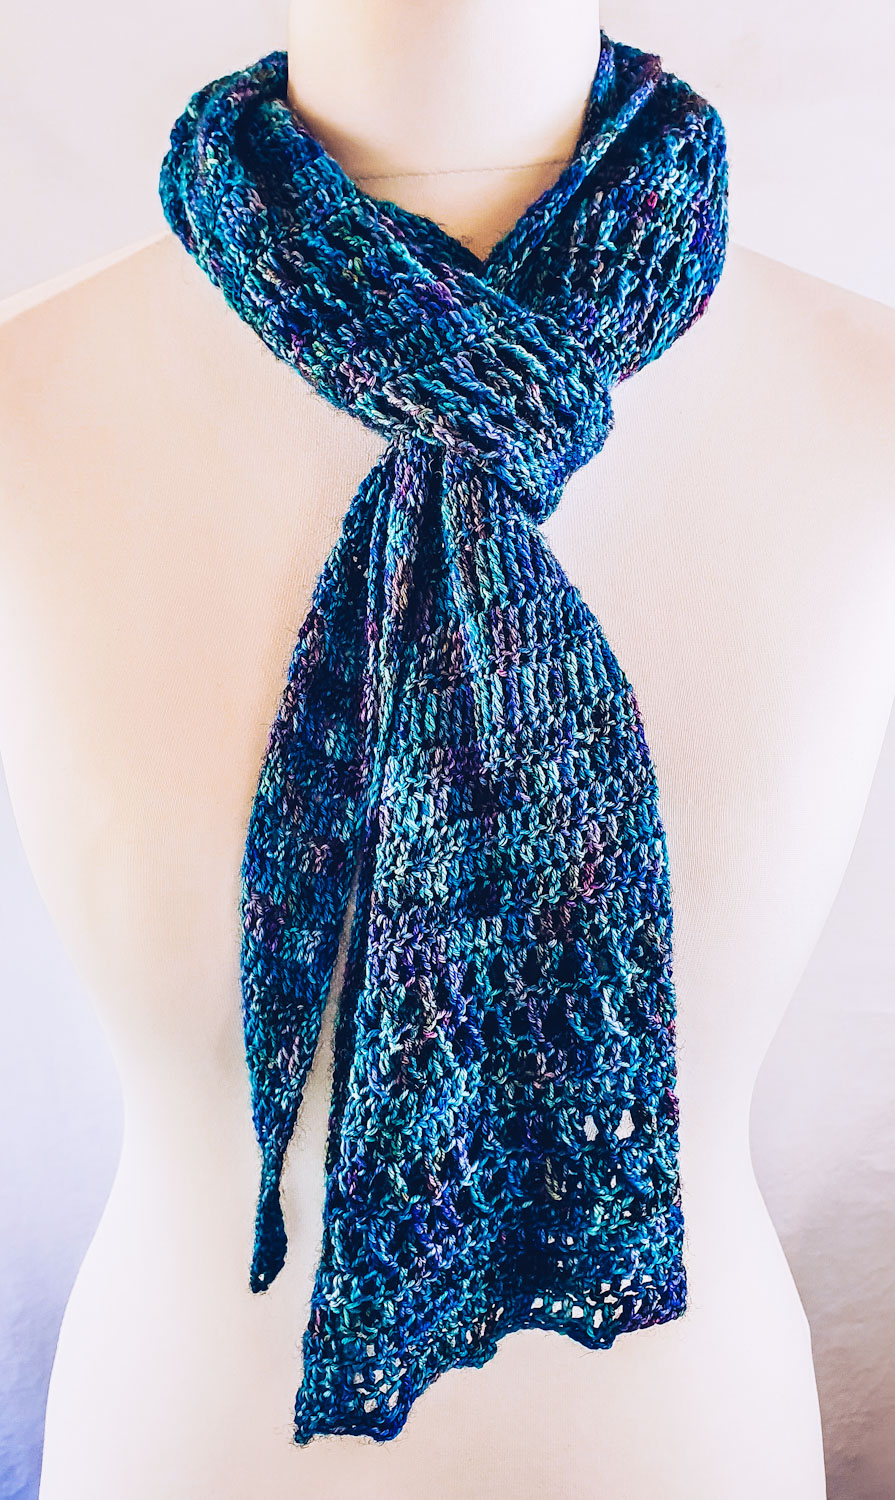 Chic way to tie a long scarf or shawl